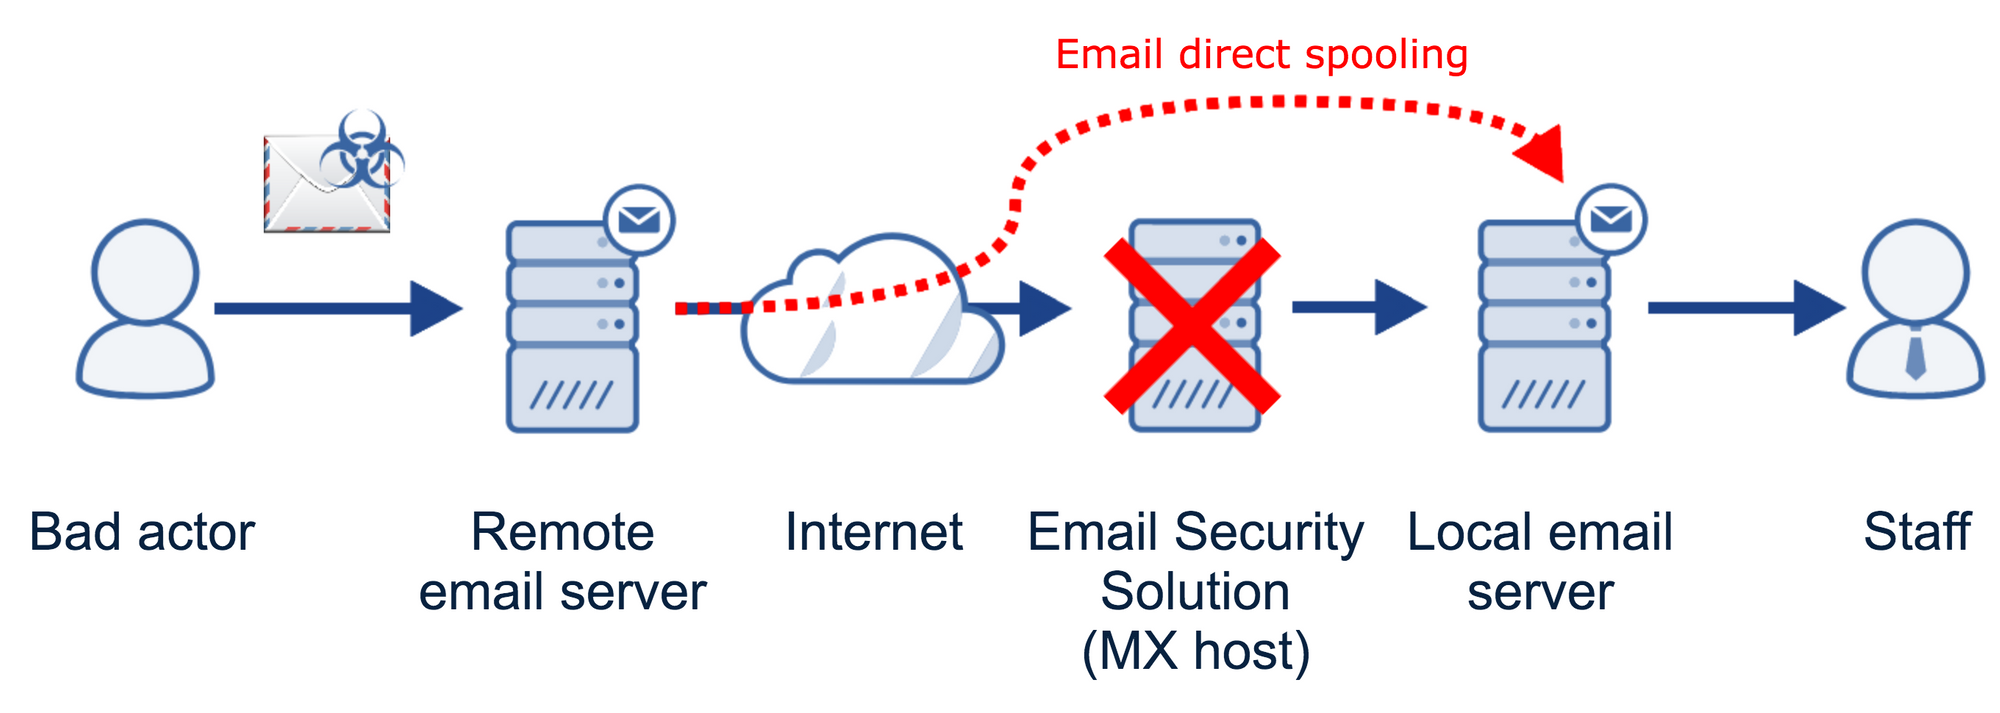 How to Evade Expensive Phishing Filters with One Simple Trick